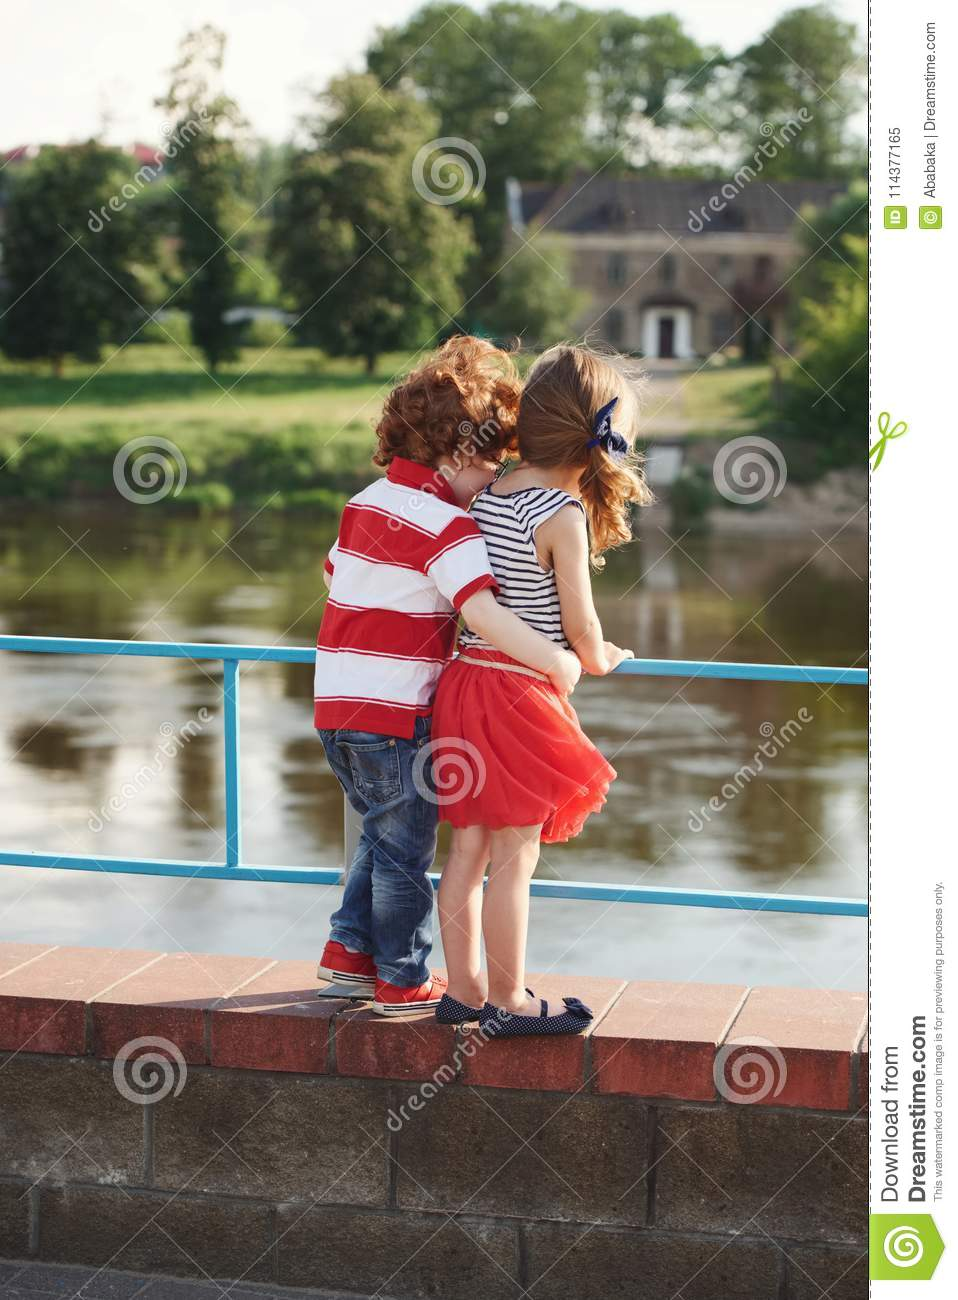 Girl and boy relationship in hindi